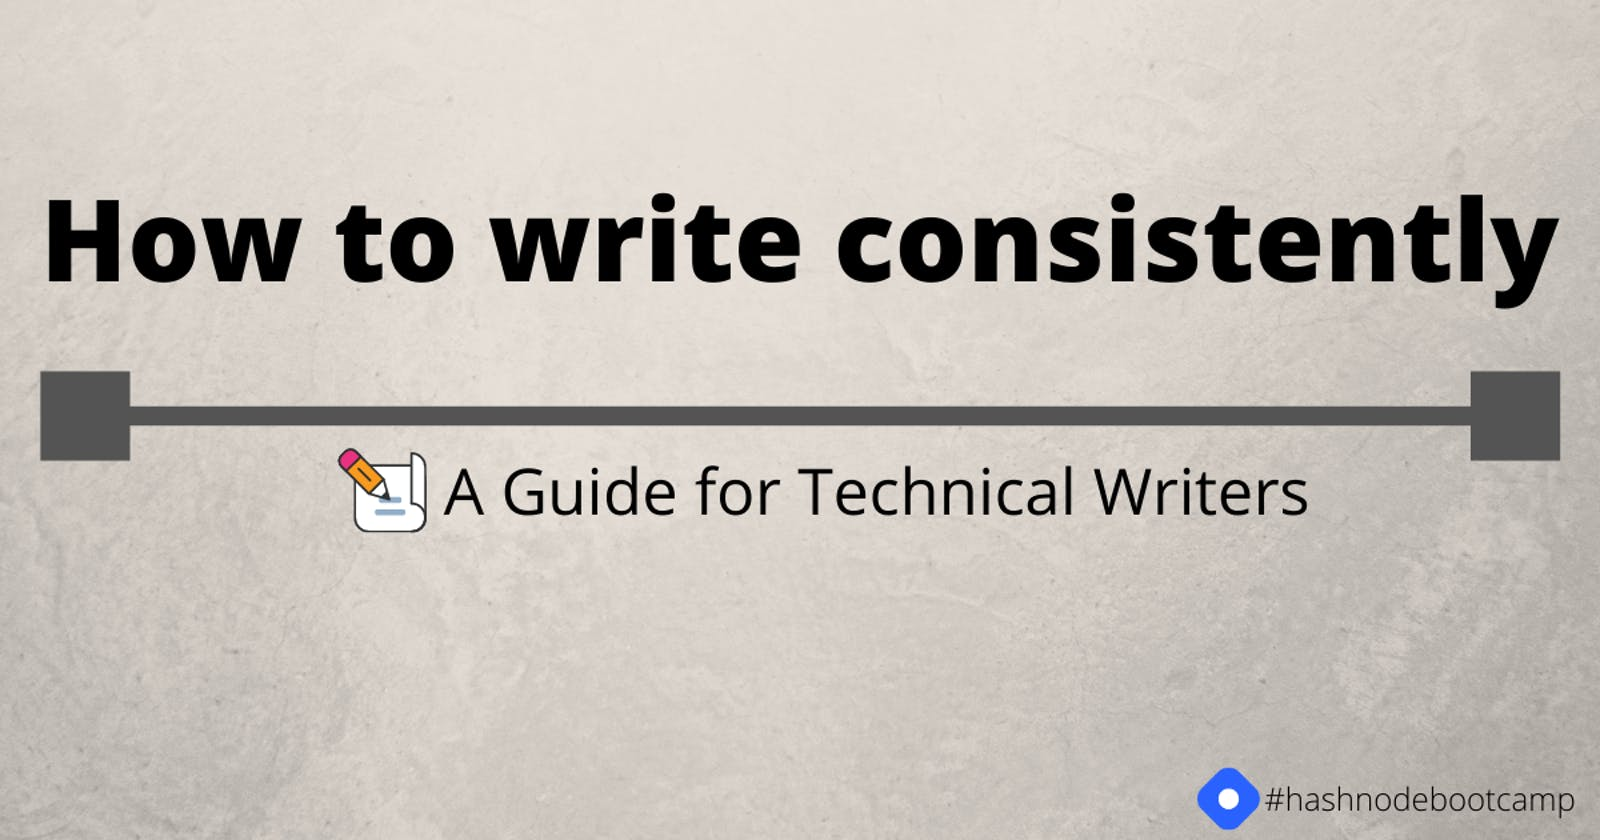 How to write consistently, a guide for technical writers